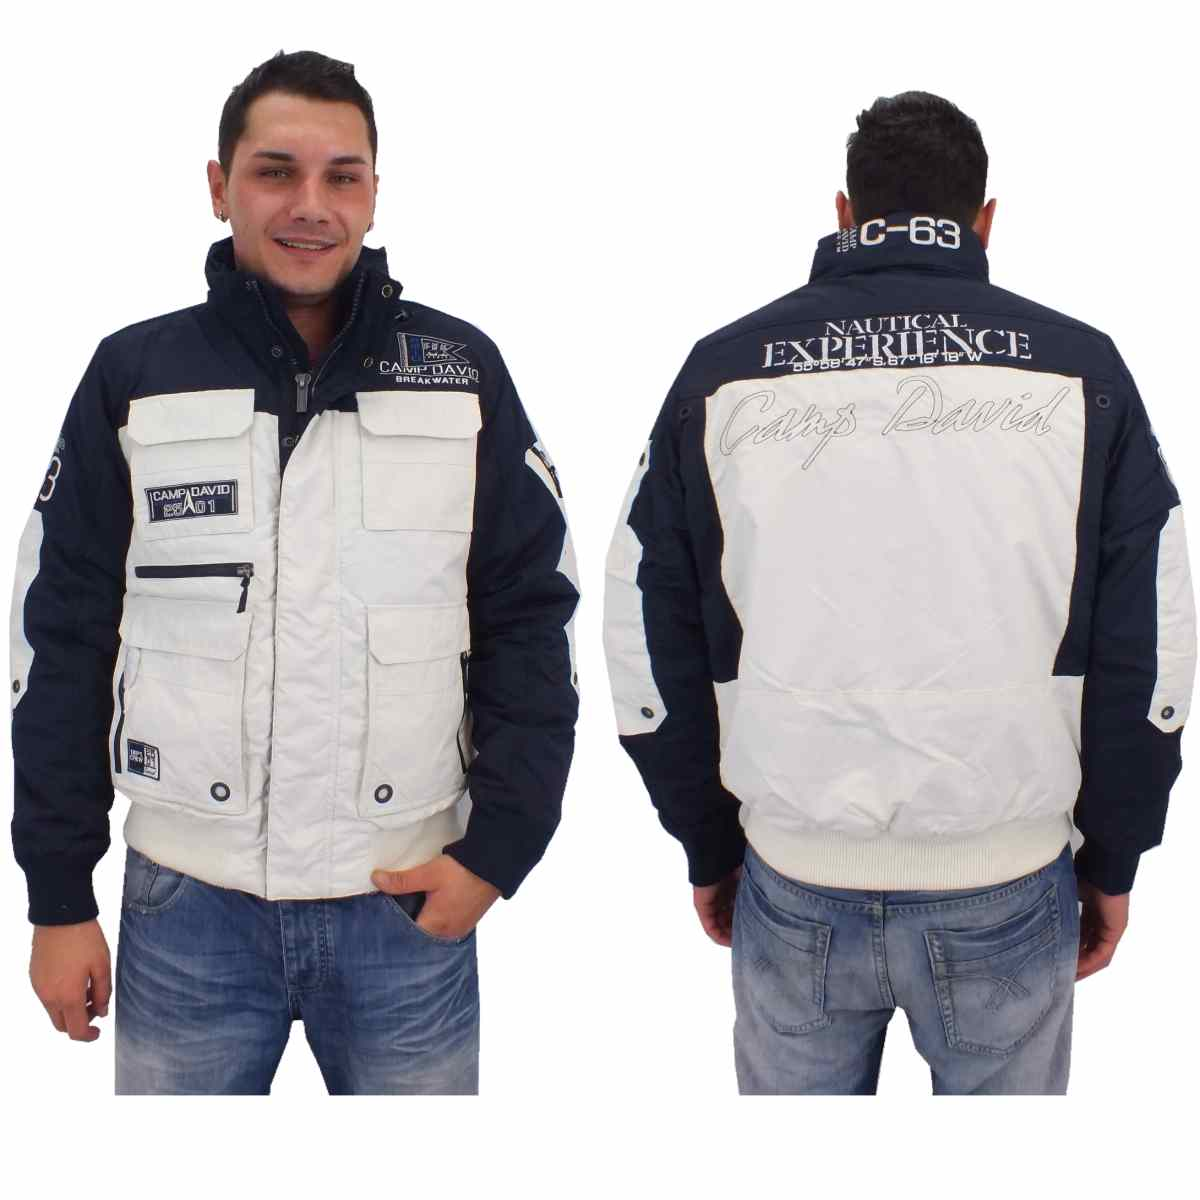 camp david cape horn jacket i cd jacket winter jacket functional jacket men ebay. Black Bedroom Furniture Sets. Home Design Ideas